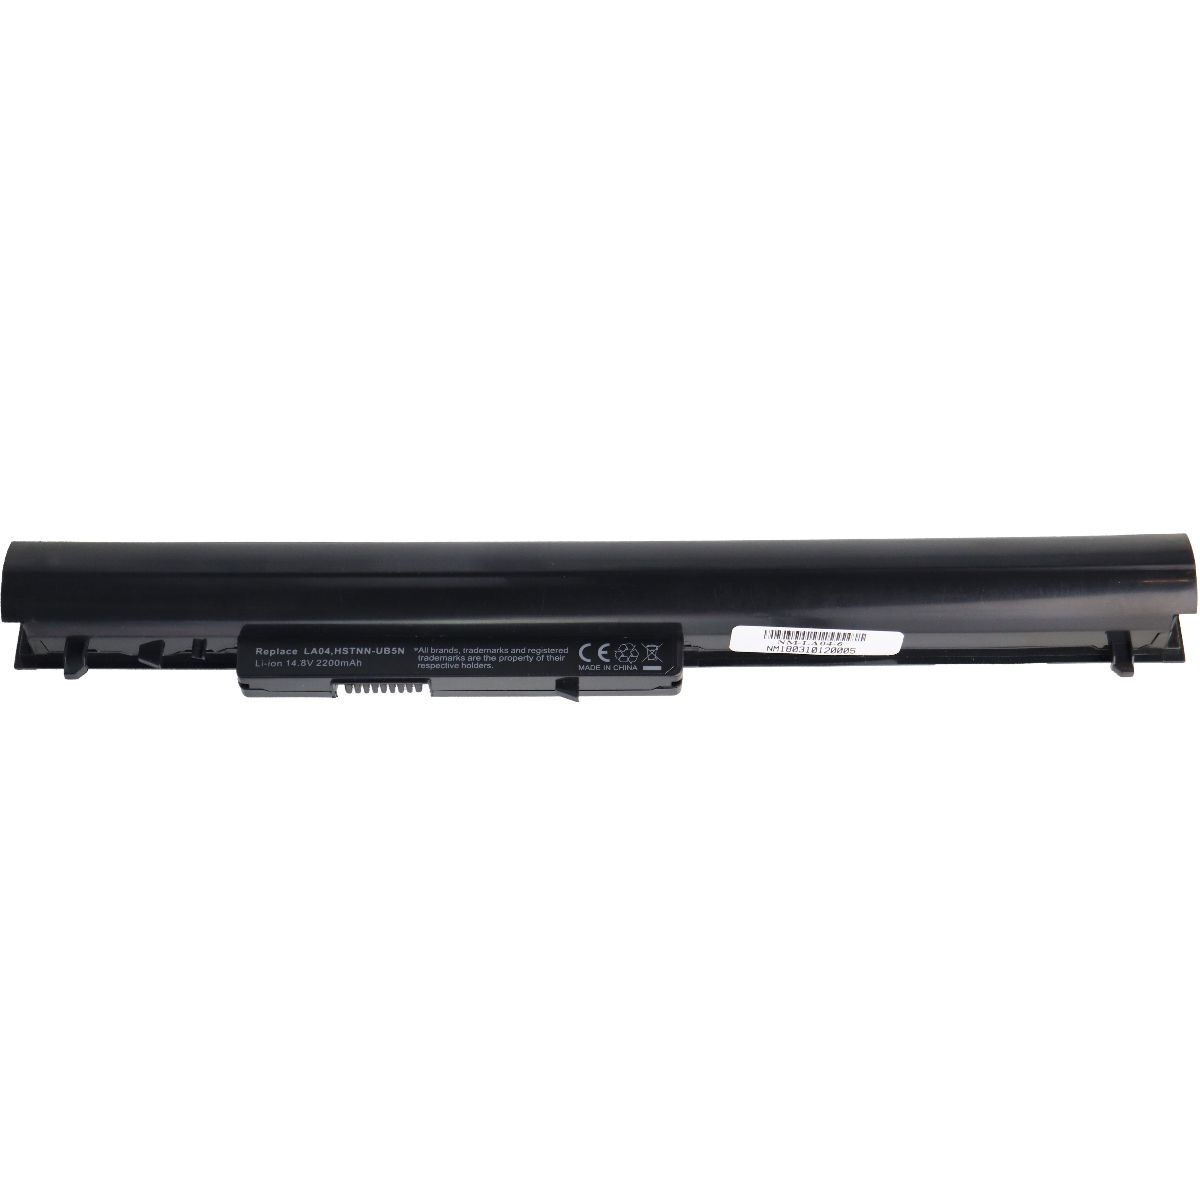 DENAQ 4-Cell 2200 mAh Lithium-Ion Battery for Select HP Laptops (NM-LA04-6)